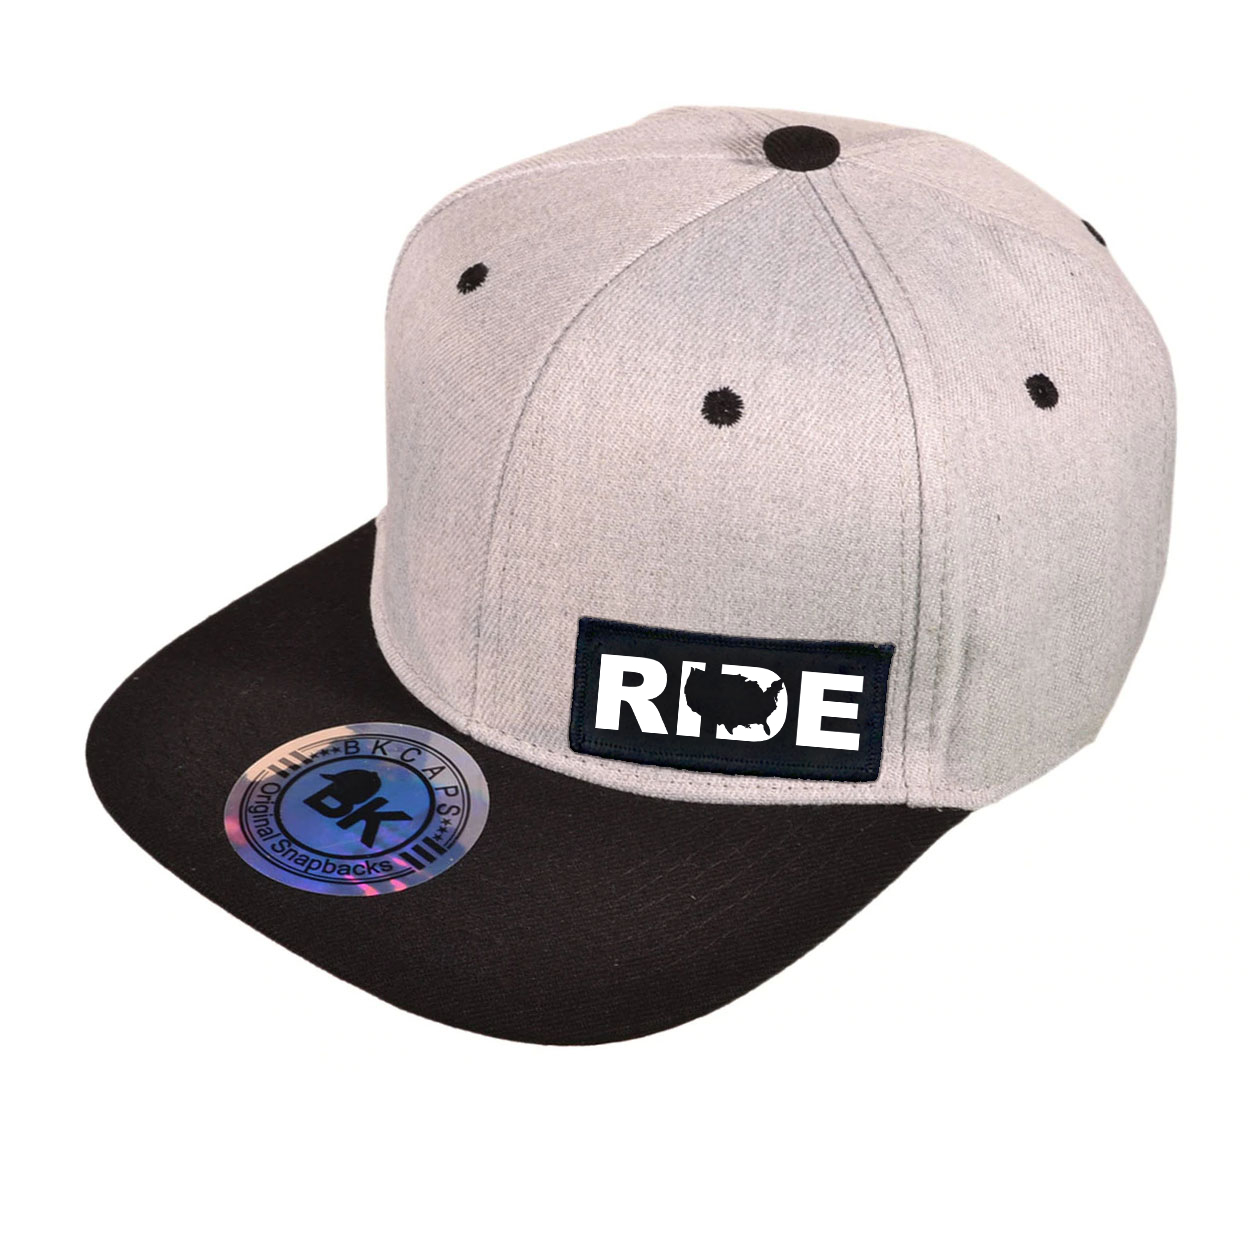 Ride United States Night Out Woven Patch Snapback Flat Brim Hat Heather Gray/Black (White Logo)